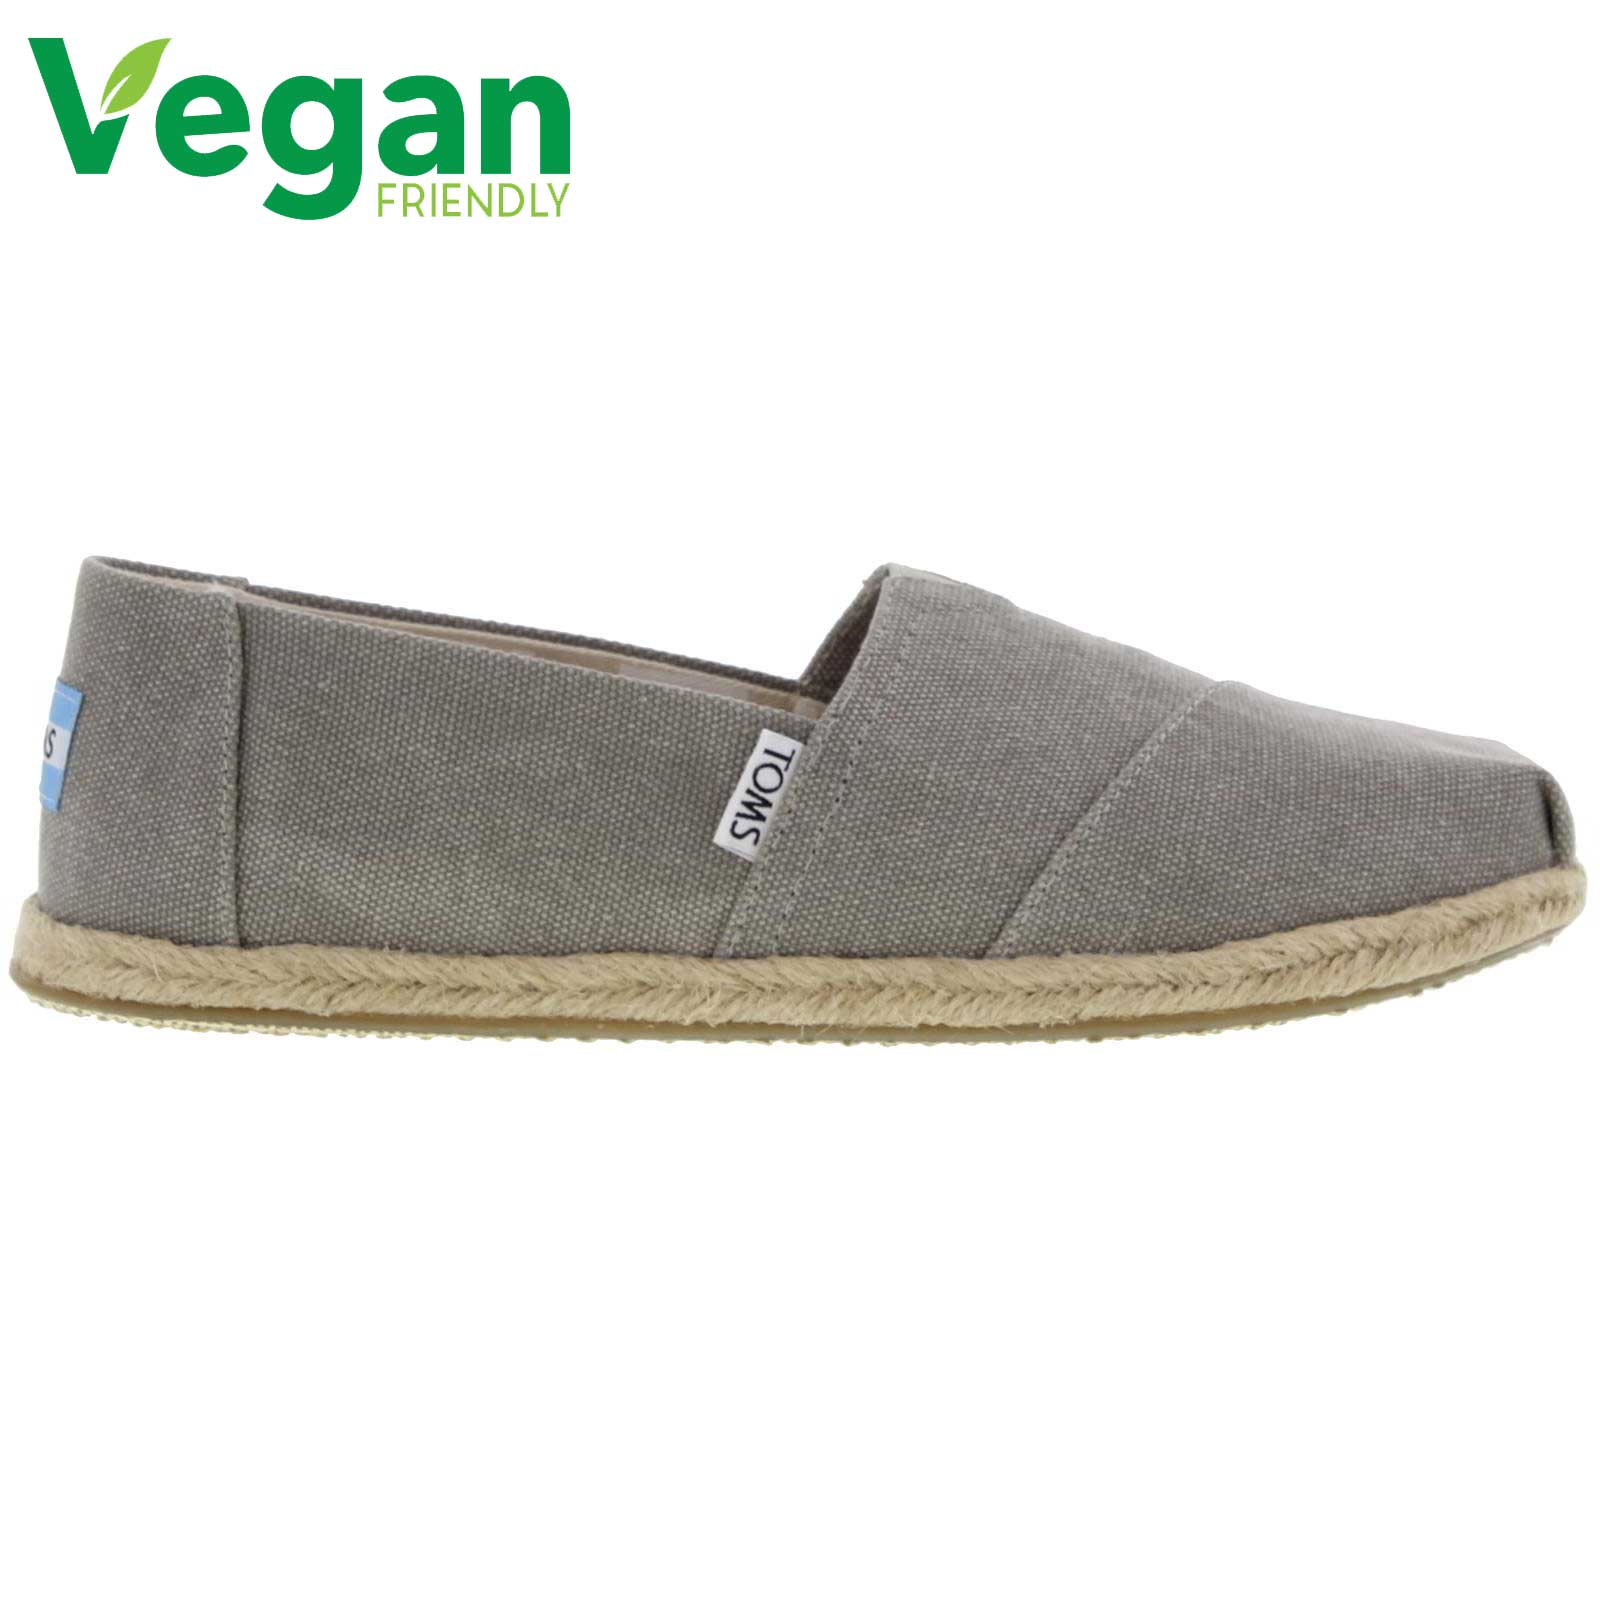 Toms Womens Classic Espadrille Vegan Shoes - Drizzle Grey Washed